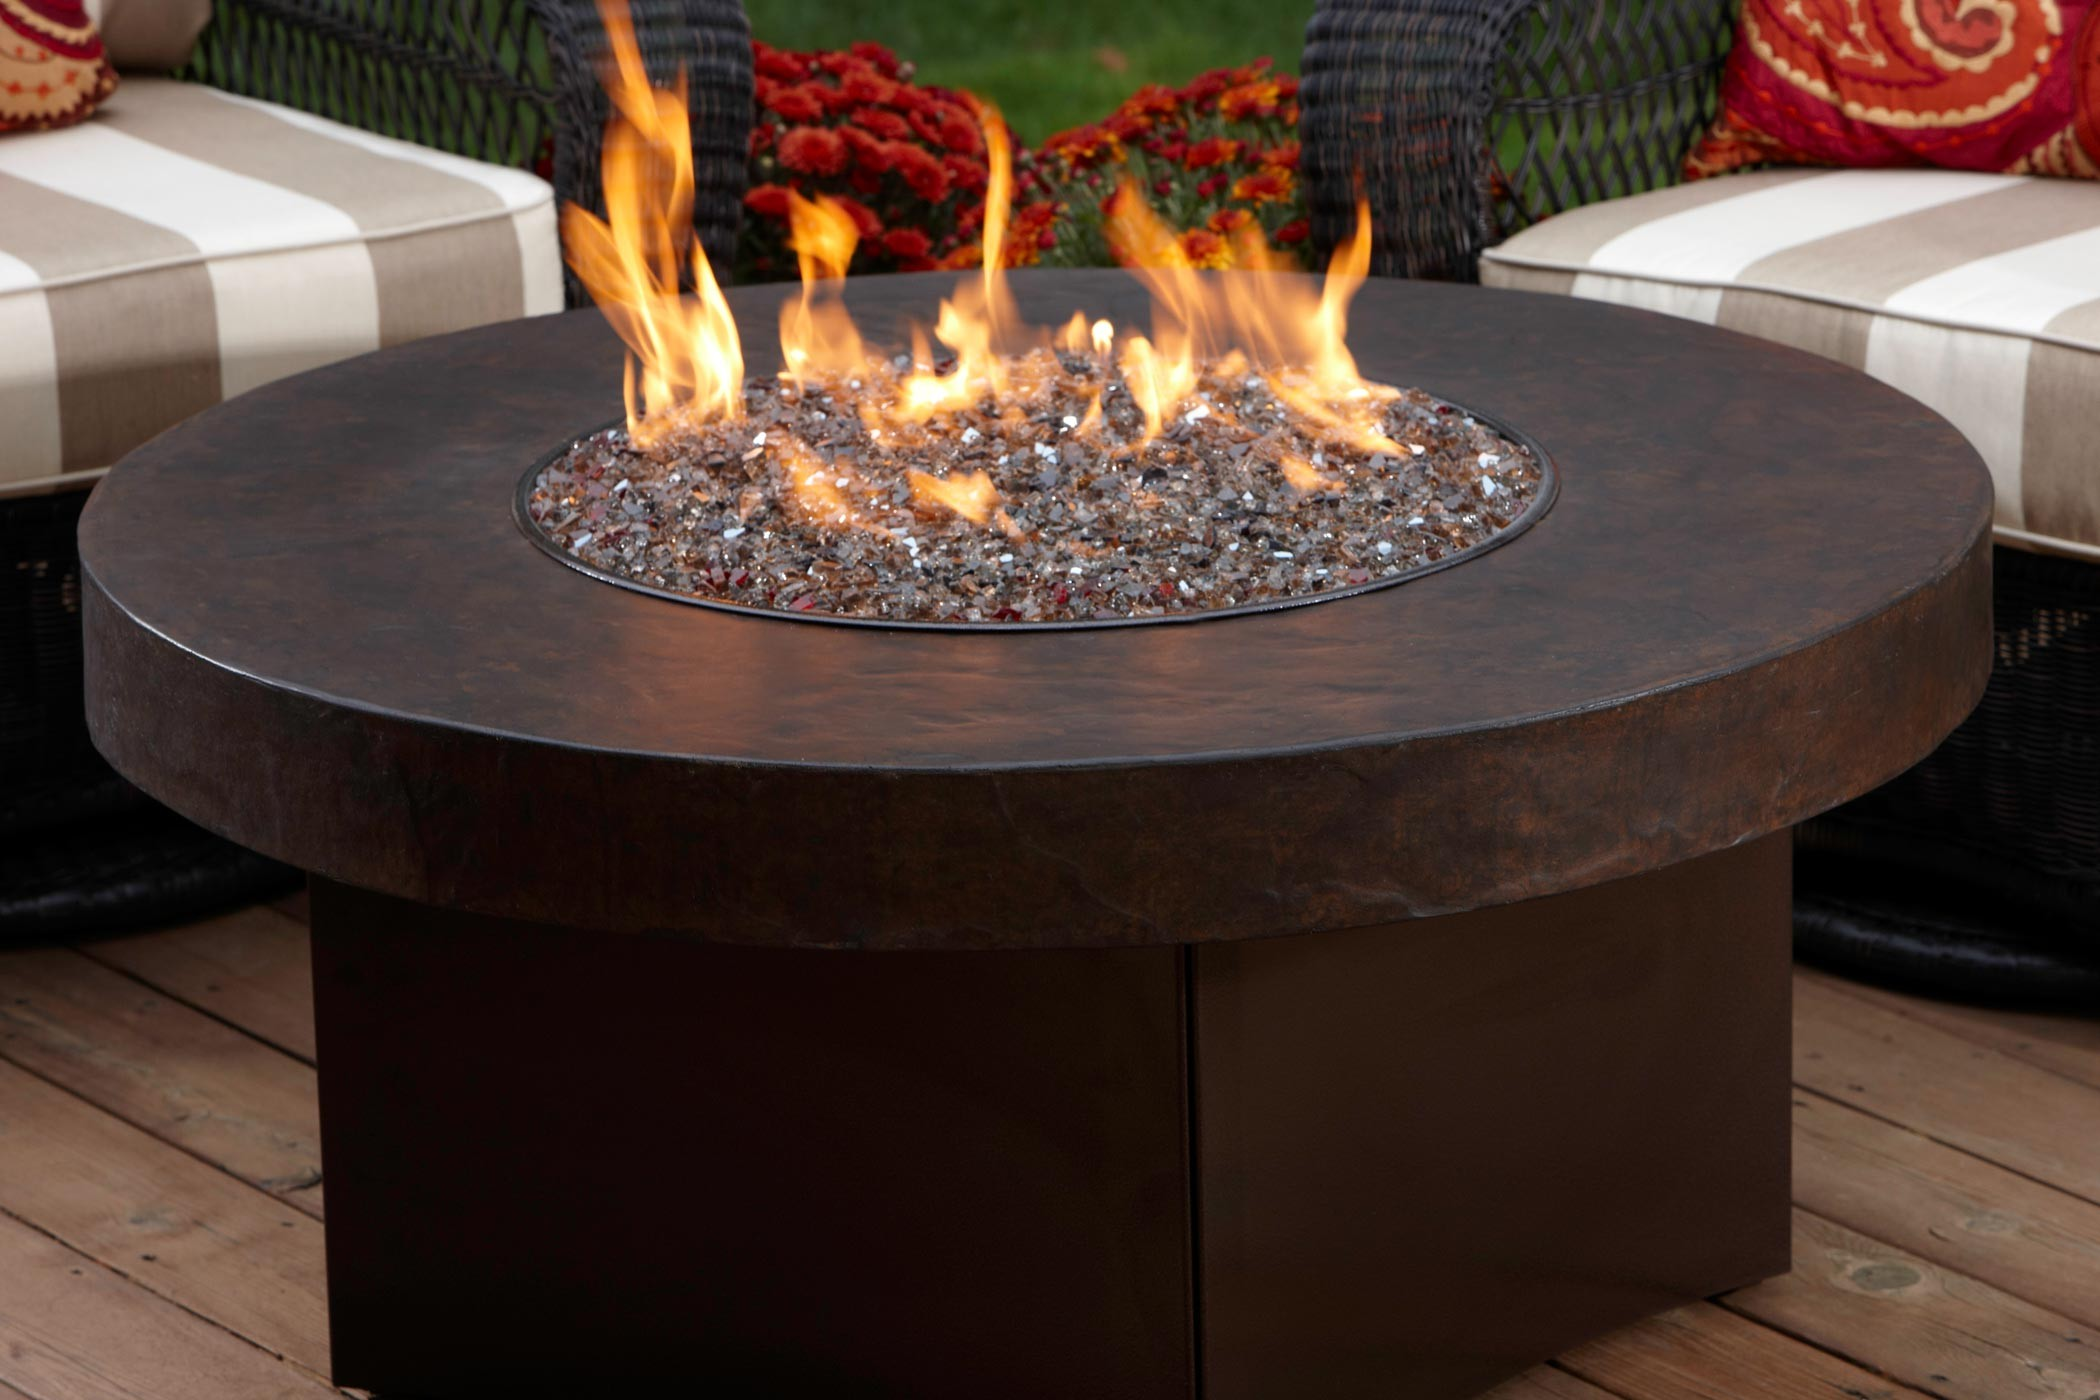 Fire Table Kit Ideas for Outdoor Patio | HomesFeed on Outdoor Gas Fireplace For Deck id=14217